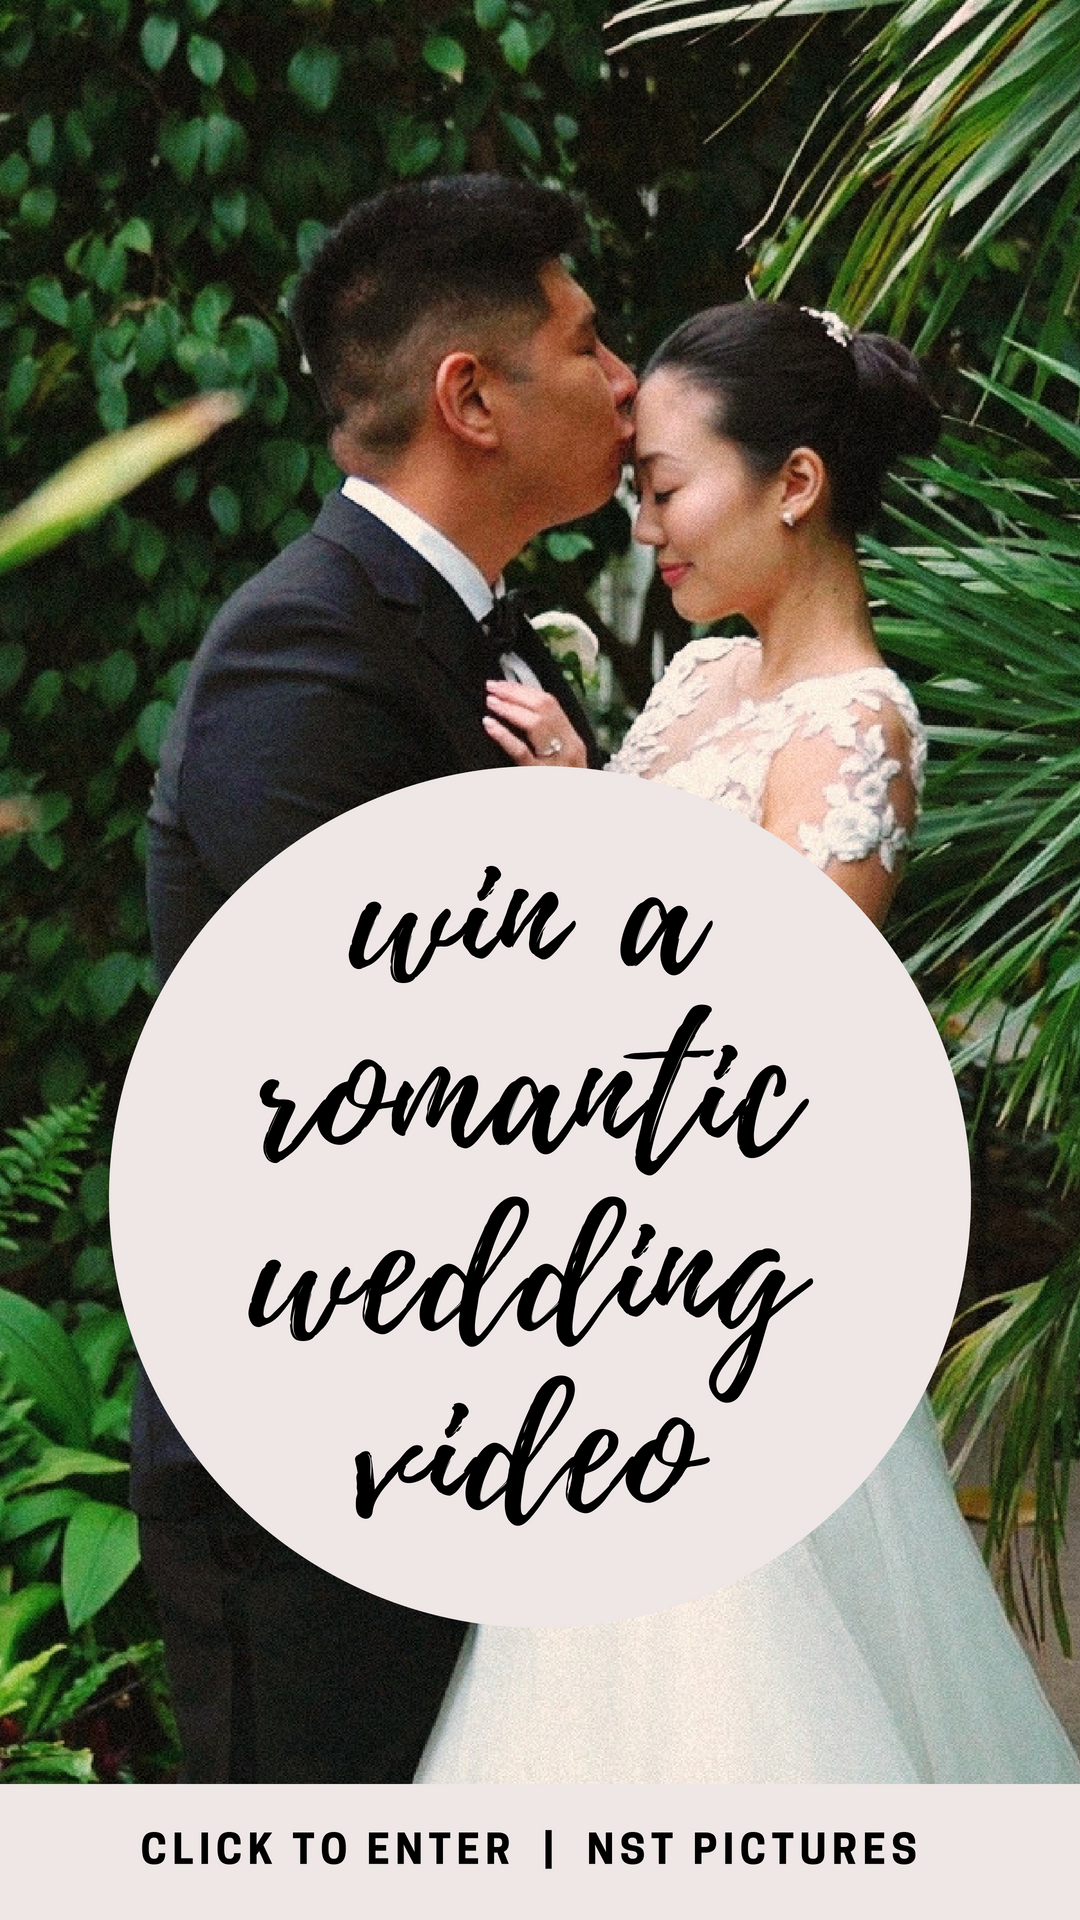 Win A Wedding Video Nst Pictures Wedding Cinematographer Wedding Video Win A Wedding Wedding Video Packages